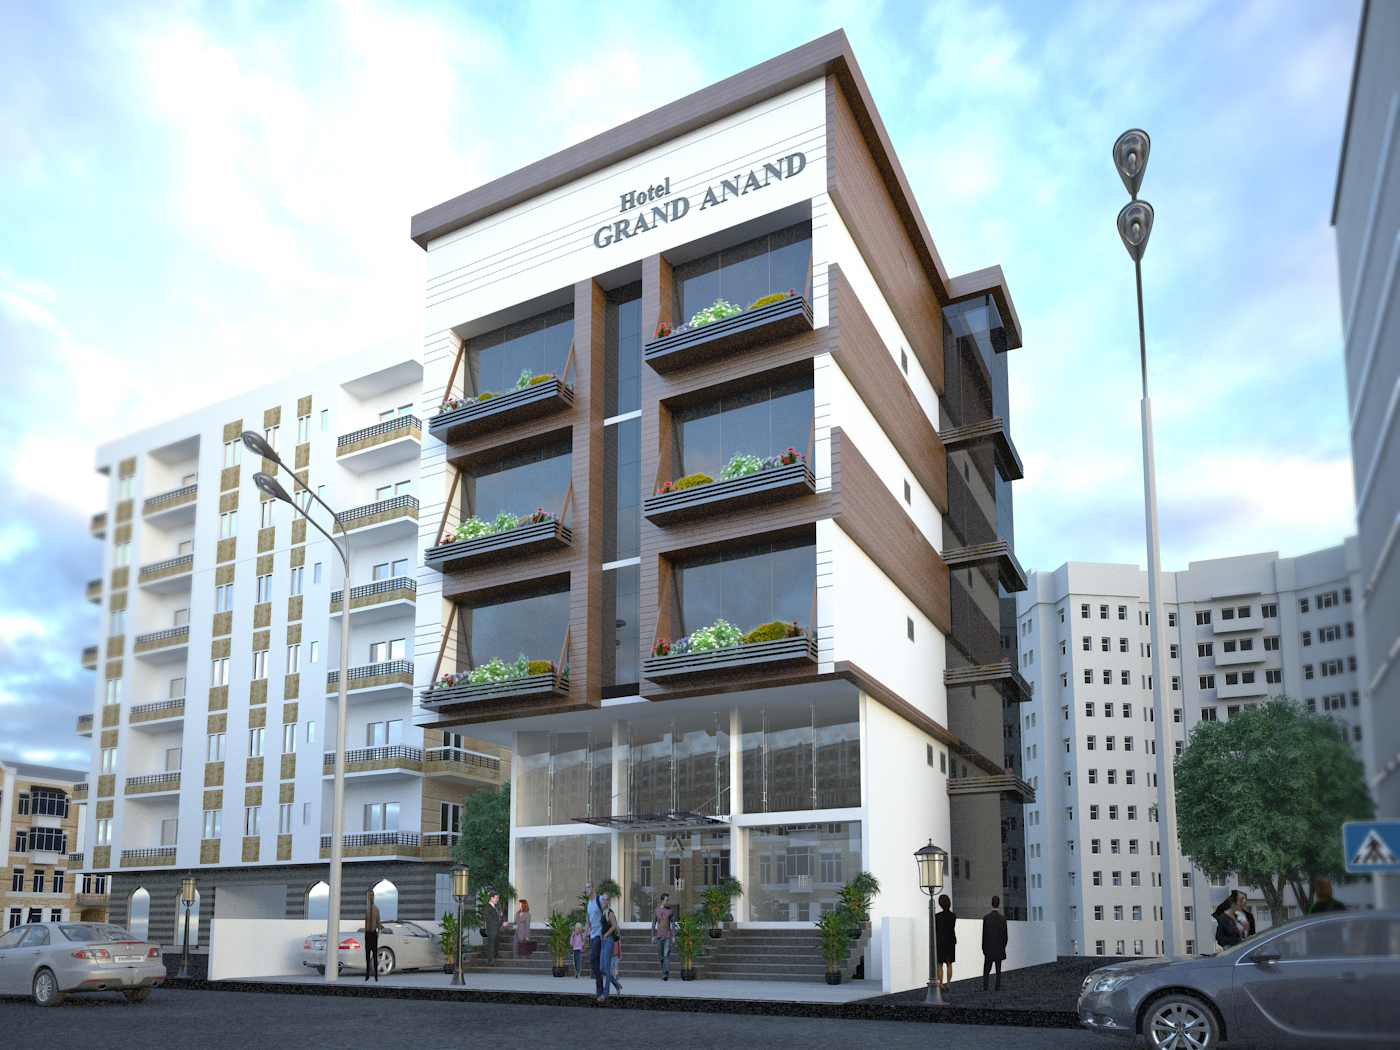 Hotel grand anand exterior design shyam clement for Hotel exterior design